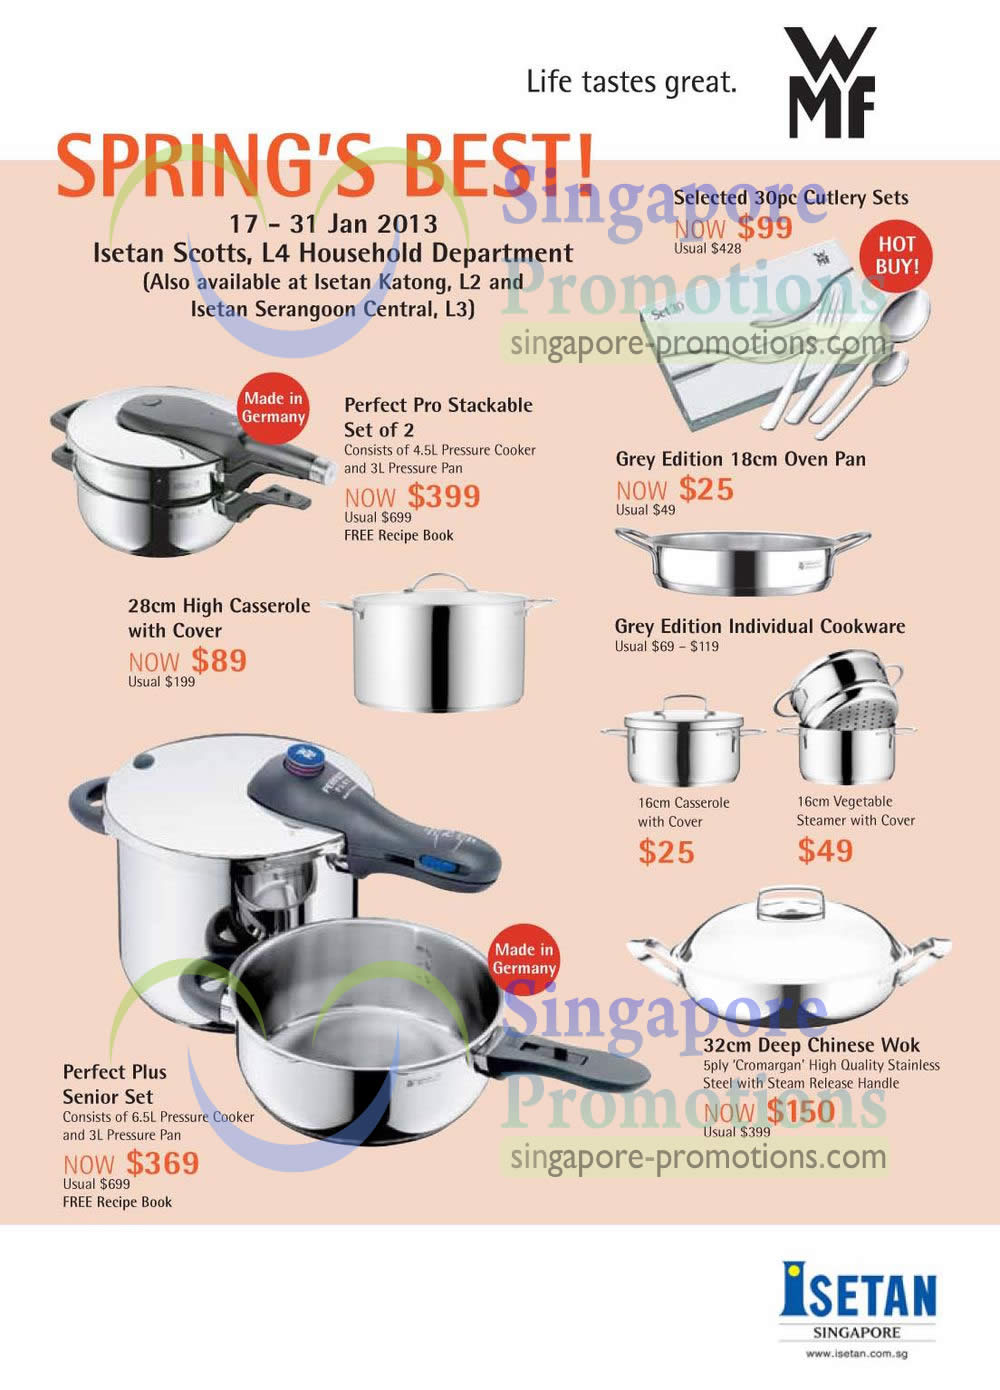 Isetan WMF Kitchenware amp Cookware Promotion Offers 17 31  : Grey Edition Oven Pan Individual Cookware Casserole Vegetable Steamer Perfect Plus Senior Set from singpromos.com size 1000 x 1390 jpeg 143kB